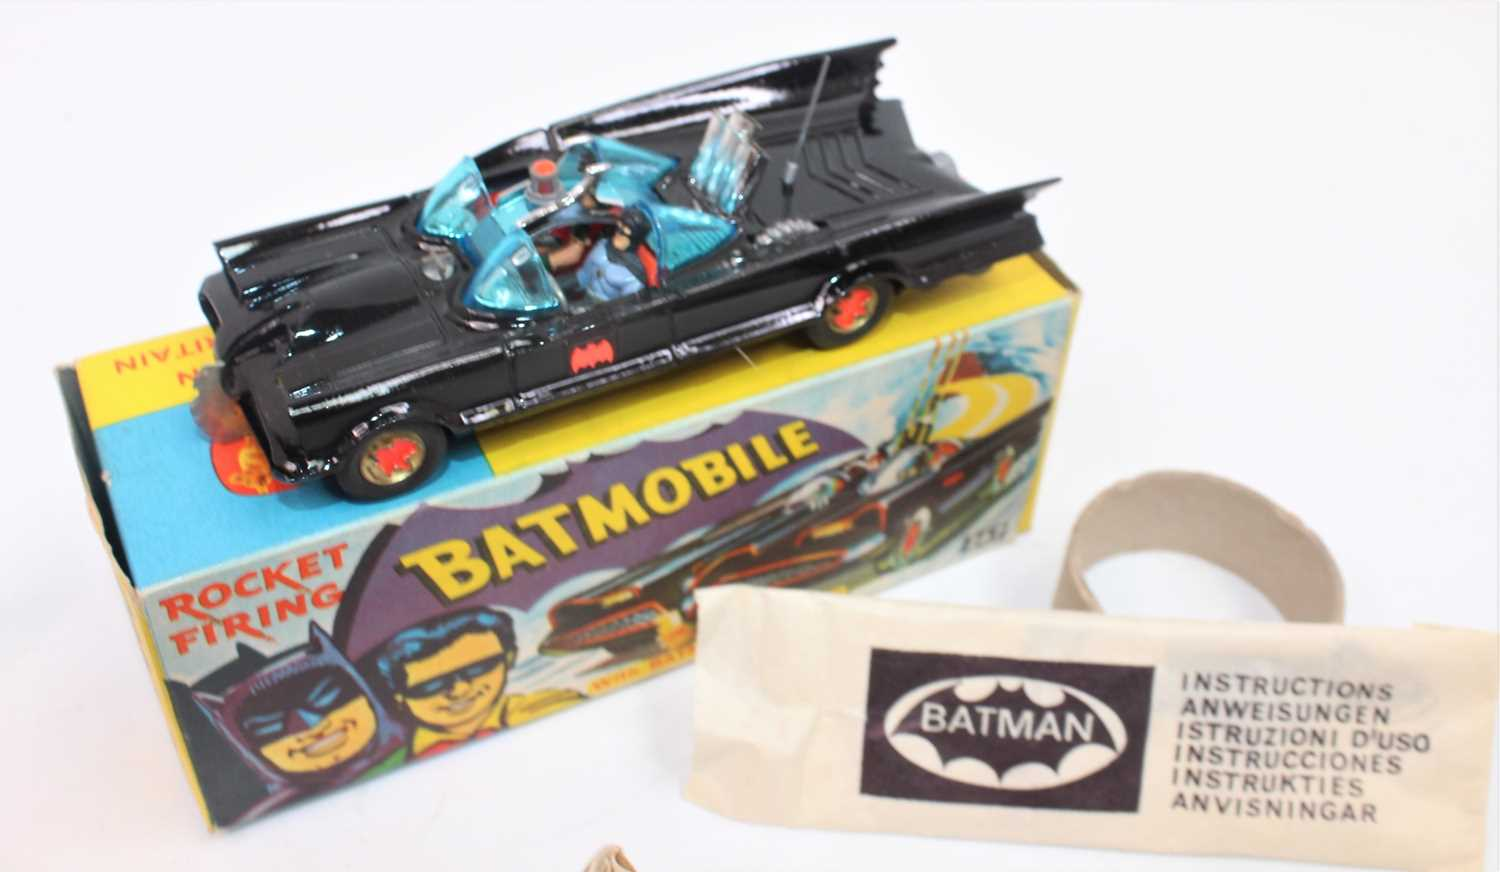 A Corgi Toys 1st issue 267 Batmobile without toe hook in gloss black body 'Bat' logo on doors, - Image 2 of 3